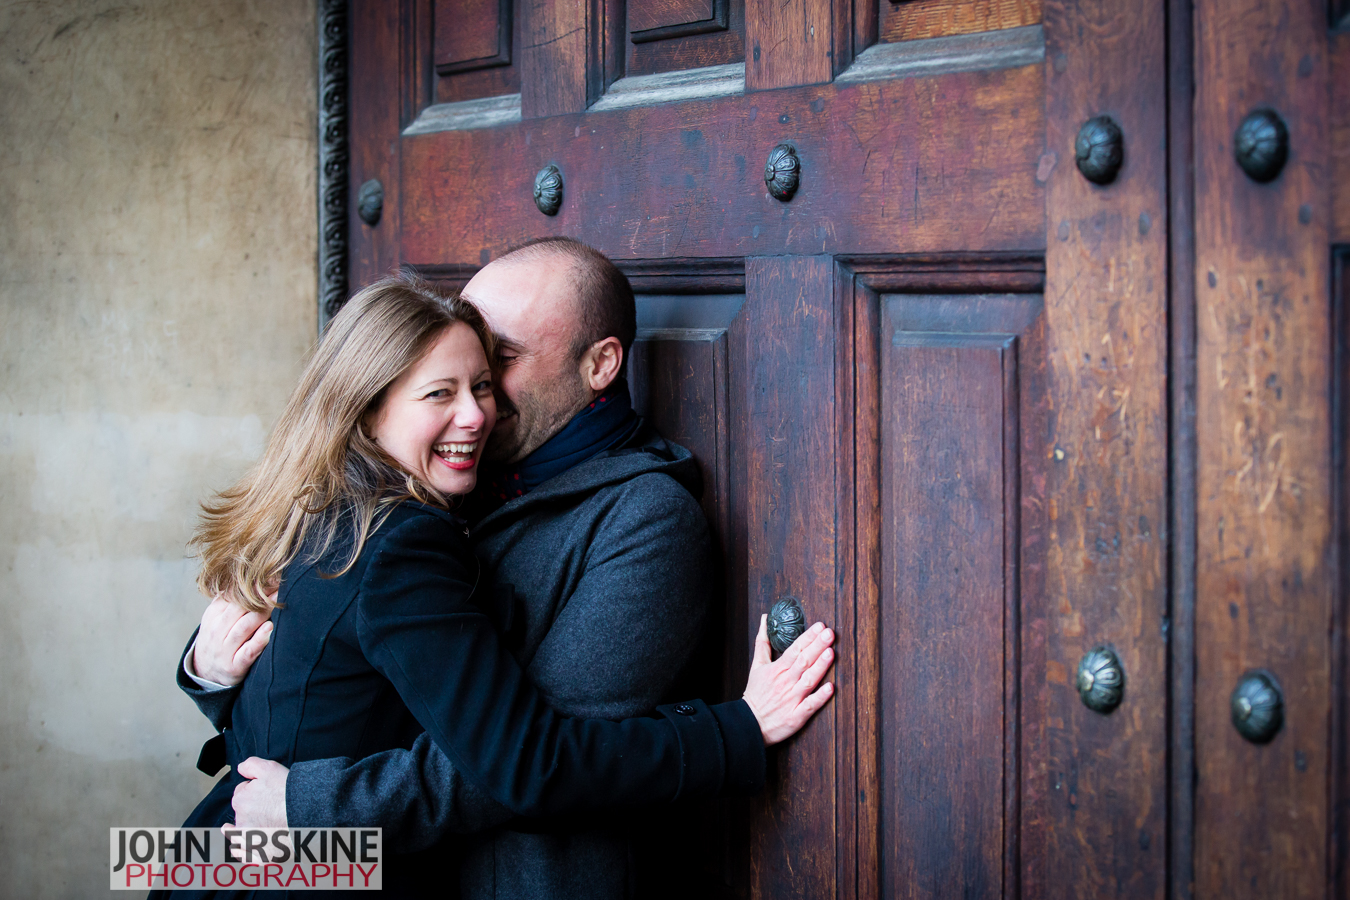 Fun Couple St Pauls Doors Engagement Photographer London